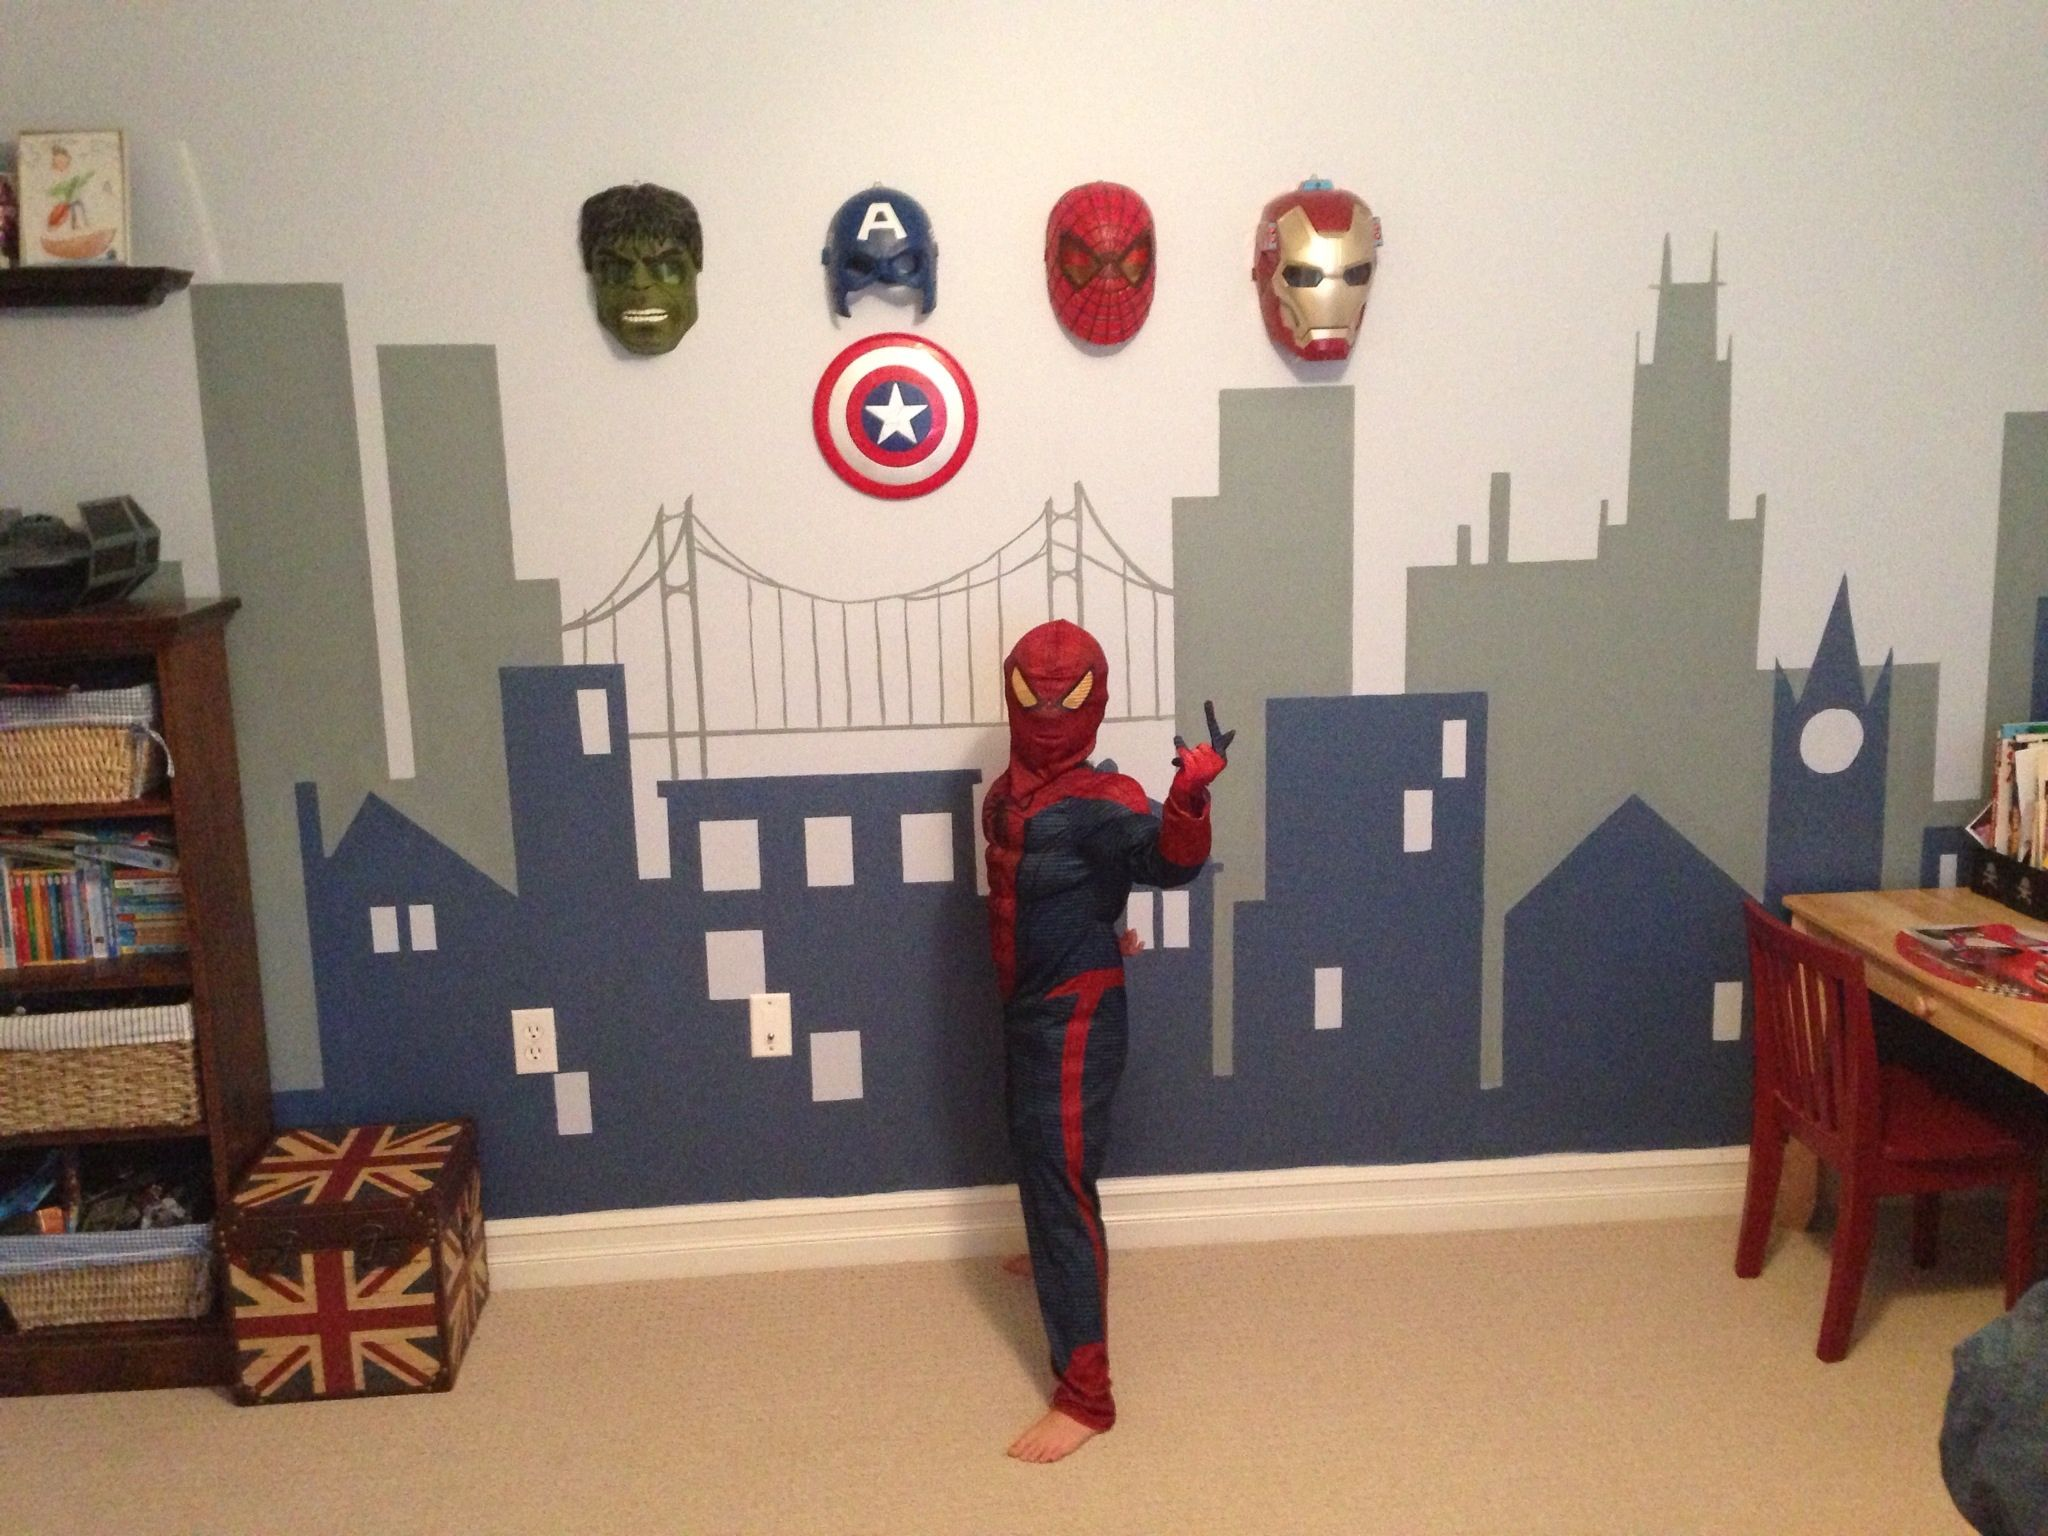 I like the idea of hanging the masks on the wall for Boys room wall mural